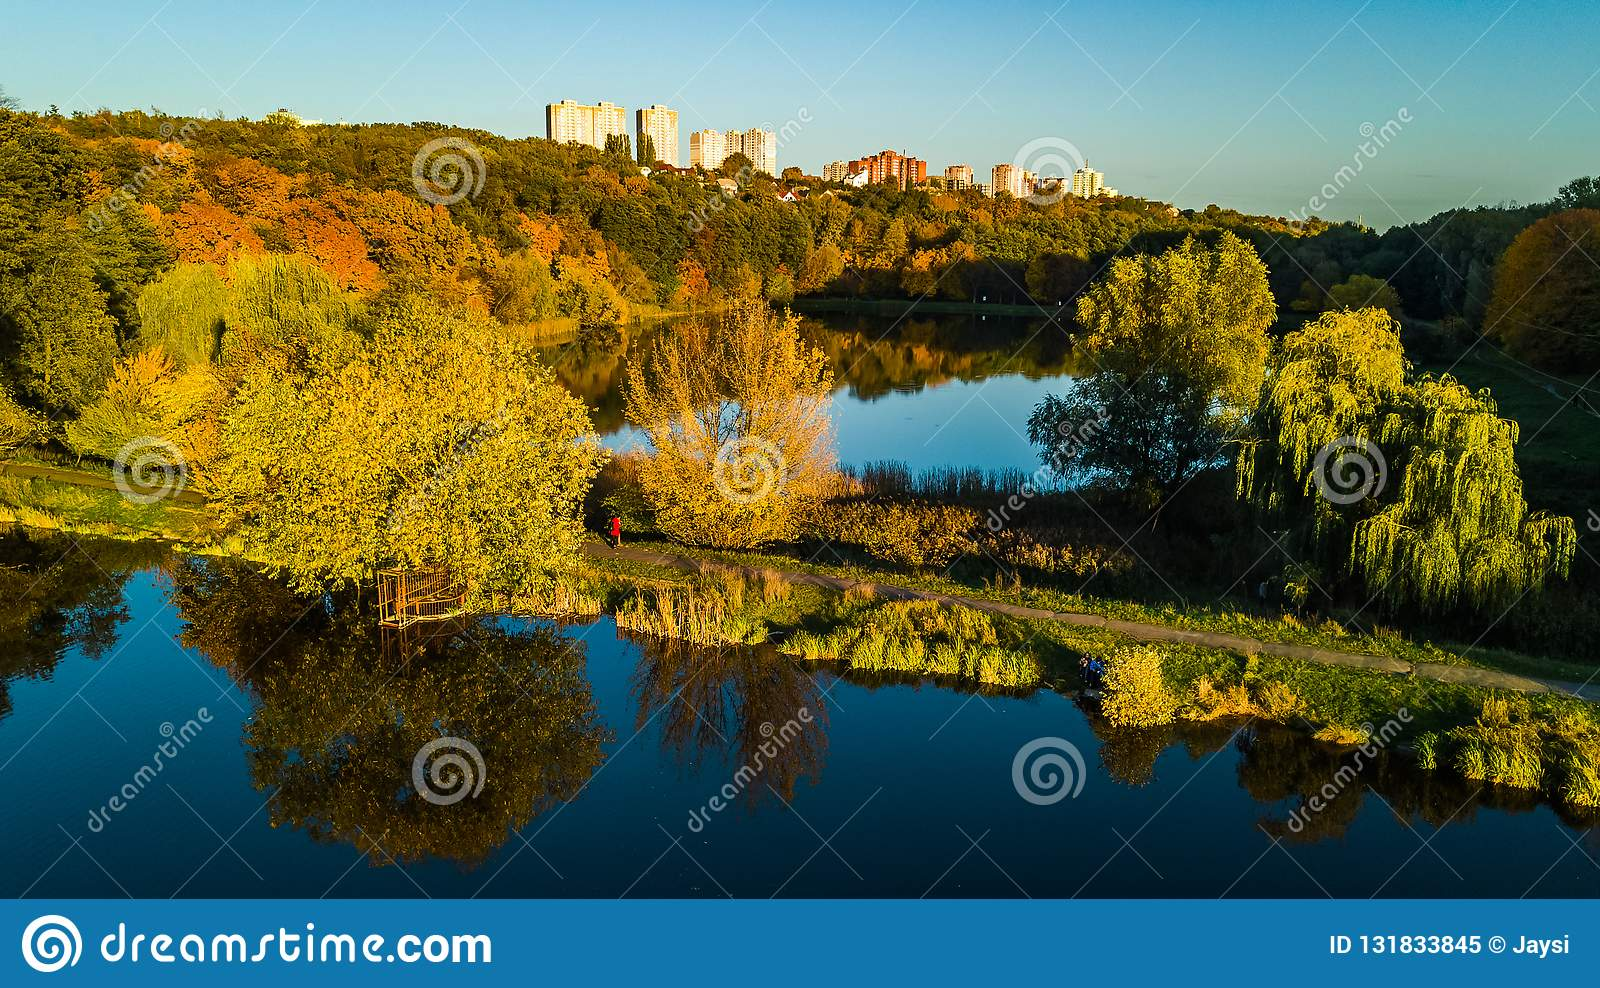 Golden autumn background, aerial drone view of forest with yellow trees and beautiful lake landscape from above, Kiev